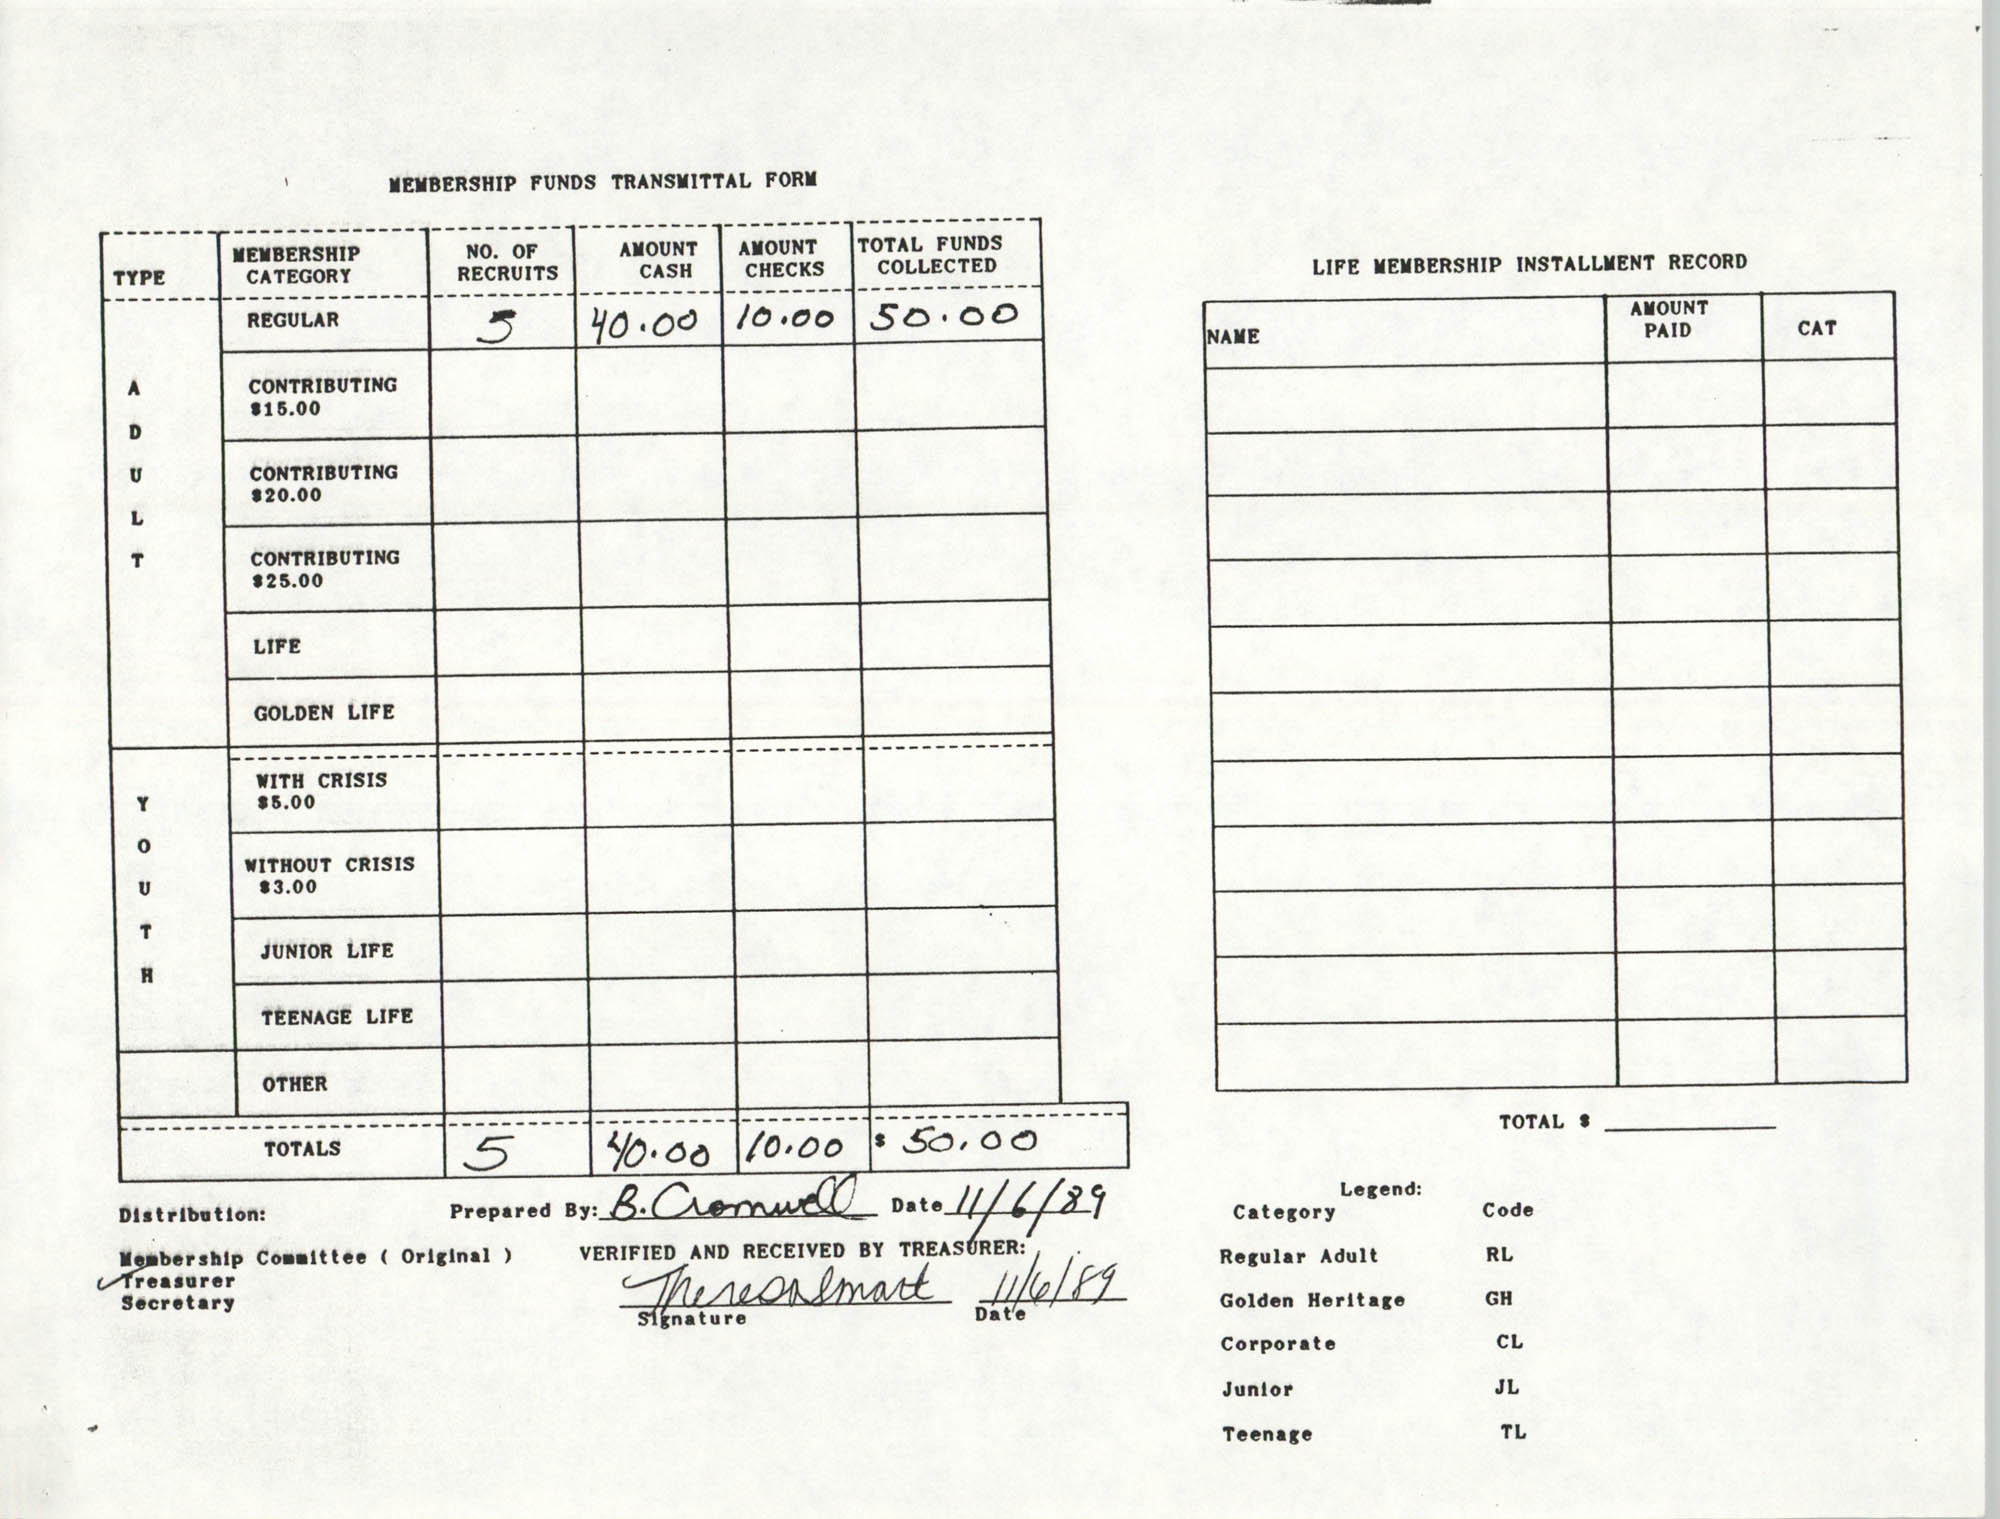 Charleston Branch of the NAACP Funds Transmittal Forms, November 1989, Page 2